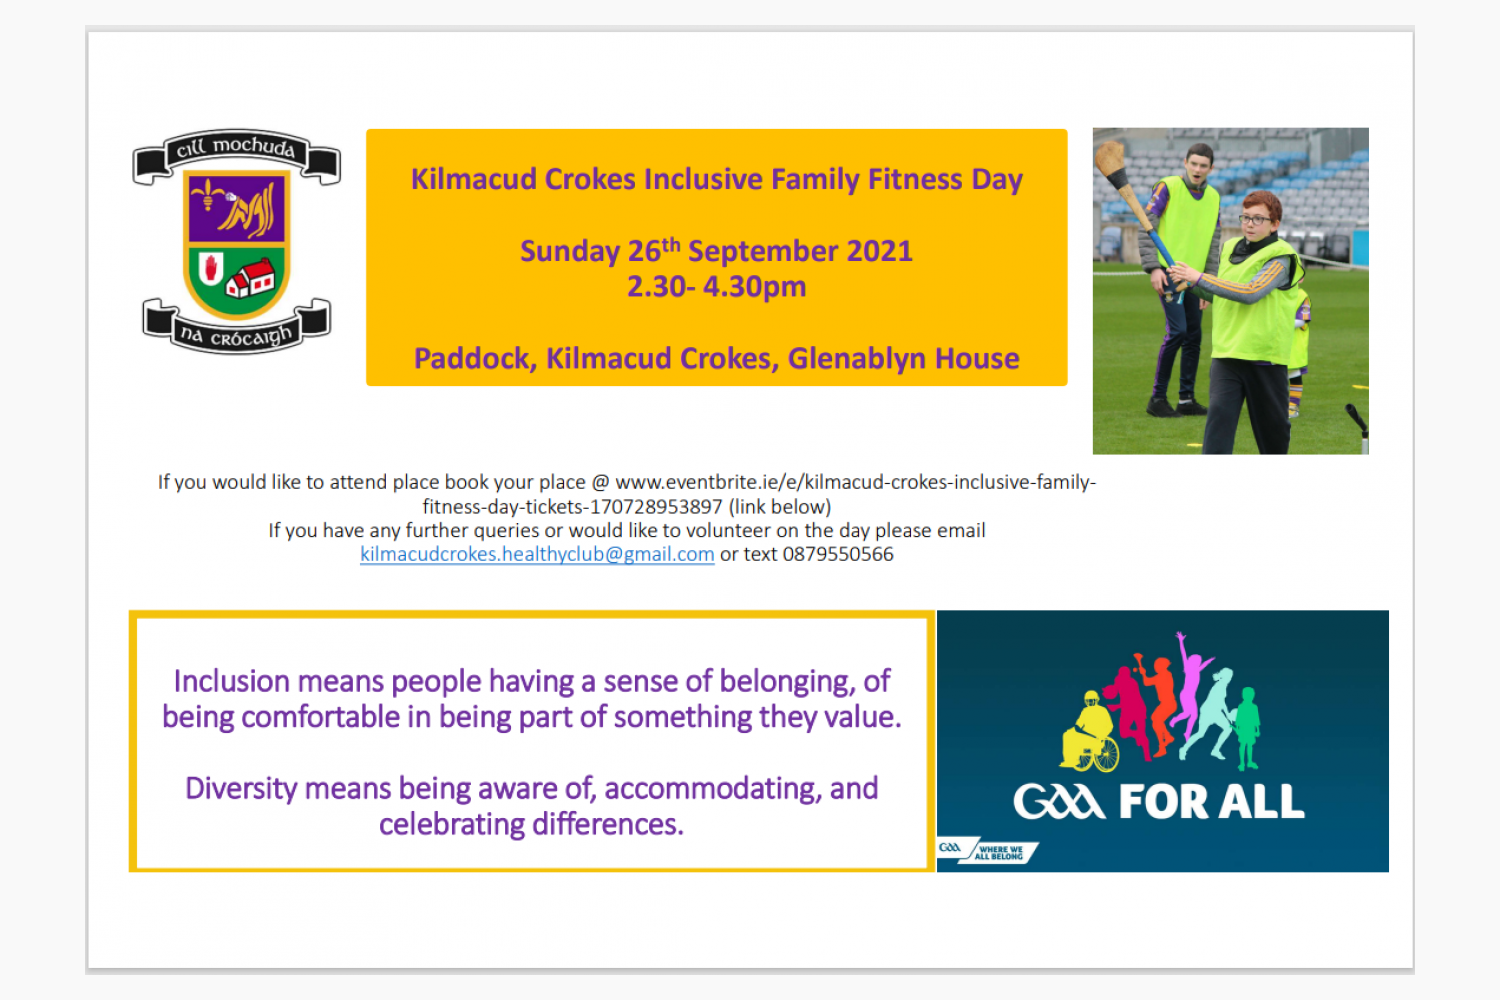 Kilmacud Crokes Inclusive Family Fitness Day  Sunday September 26th